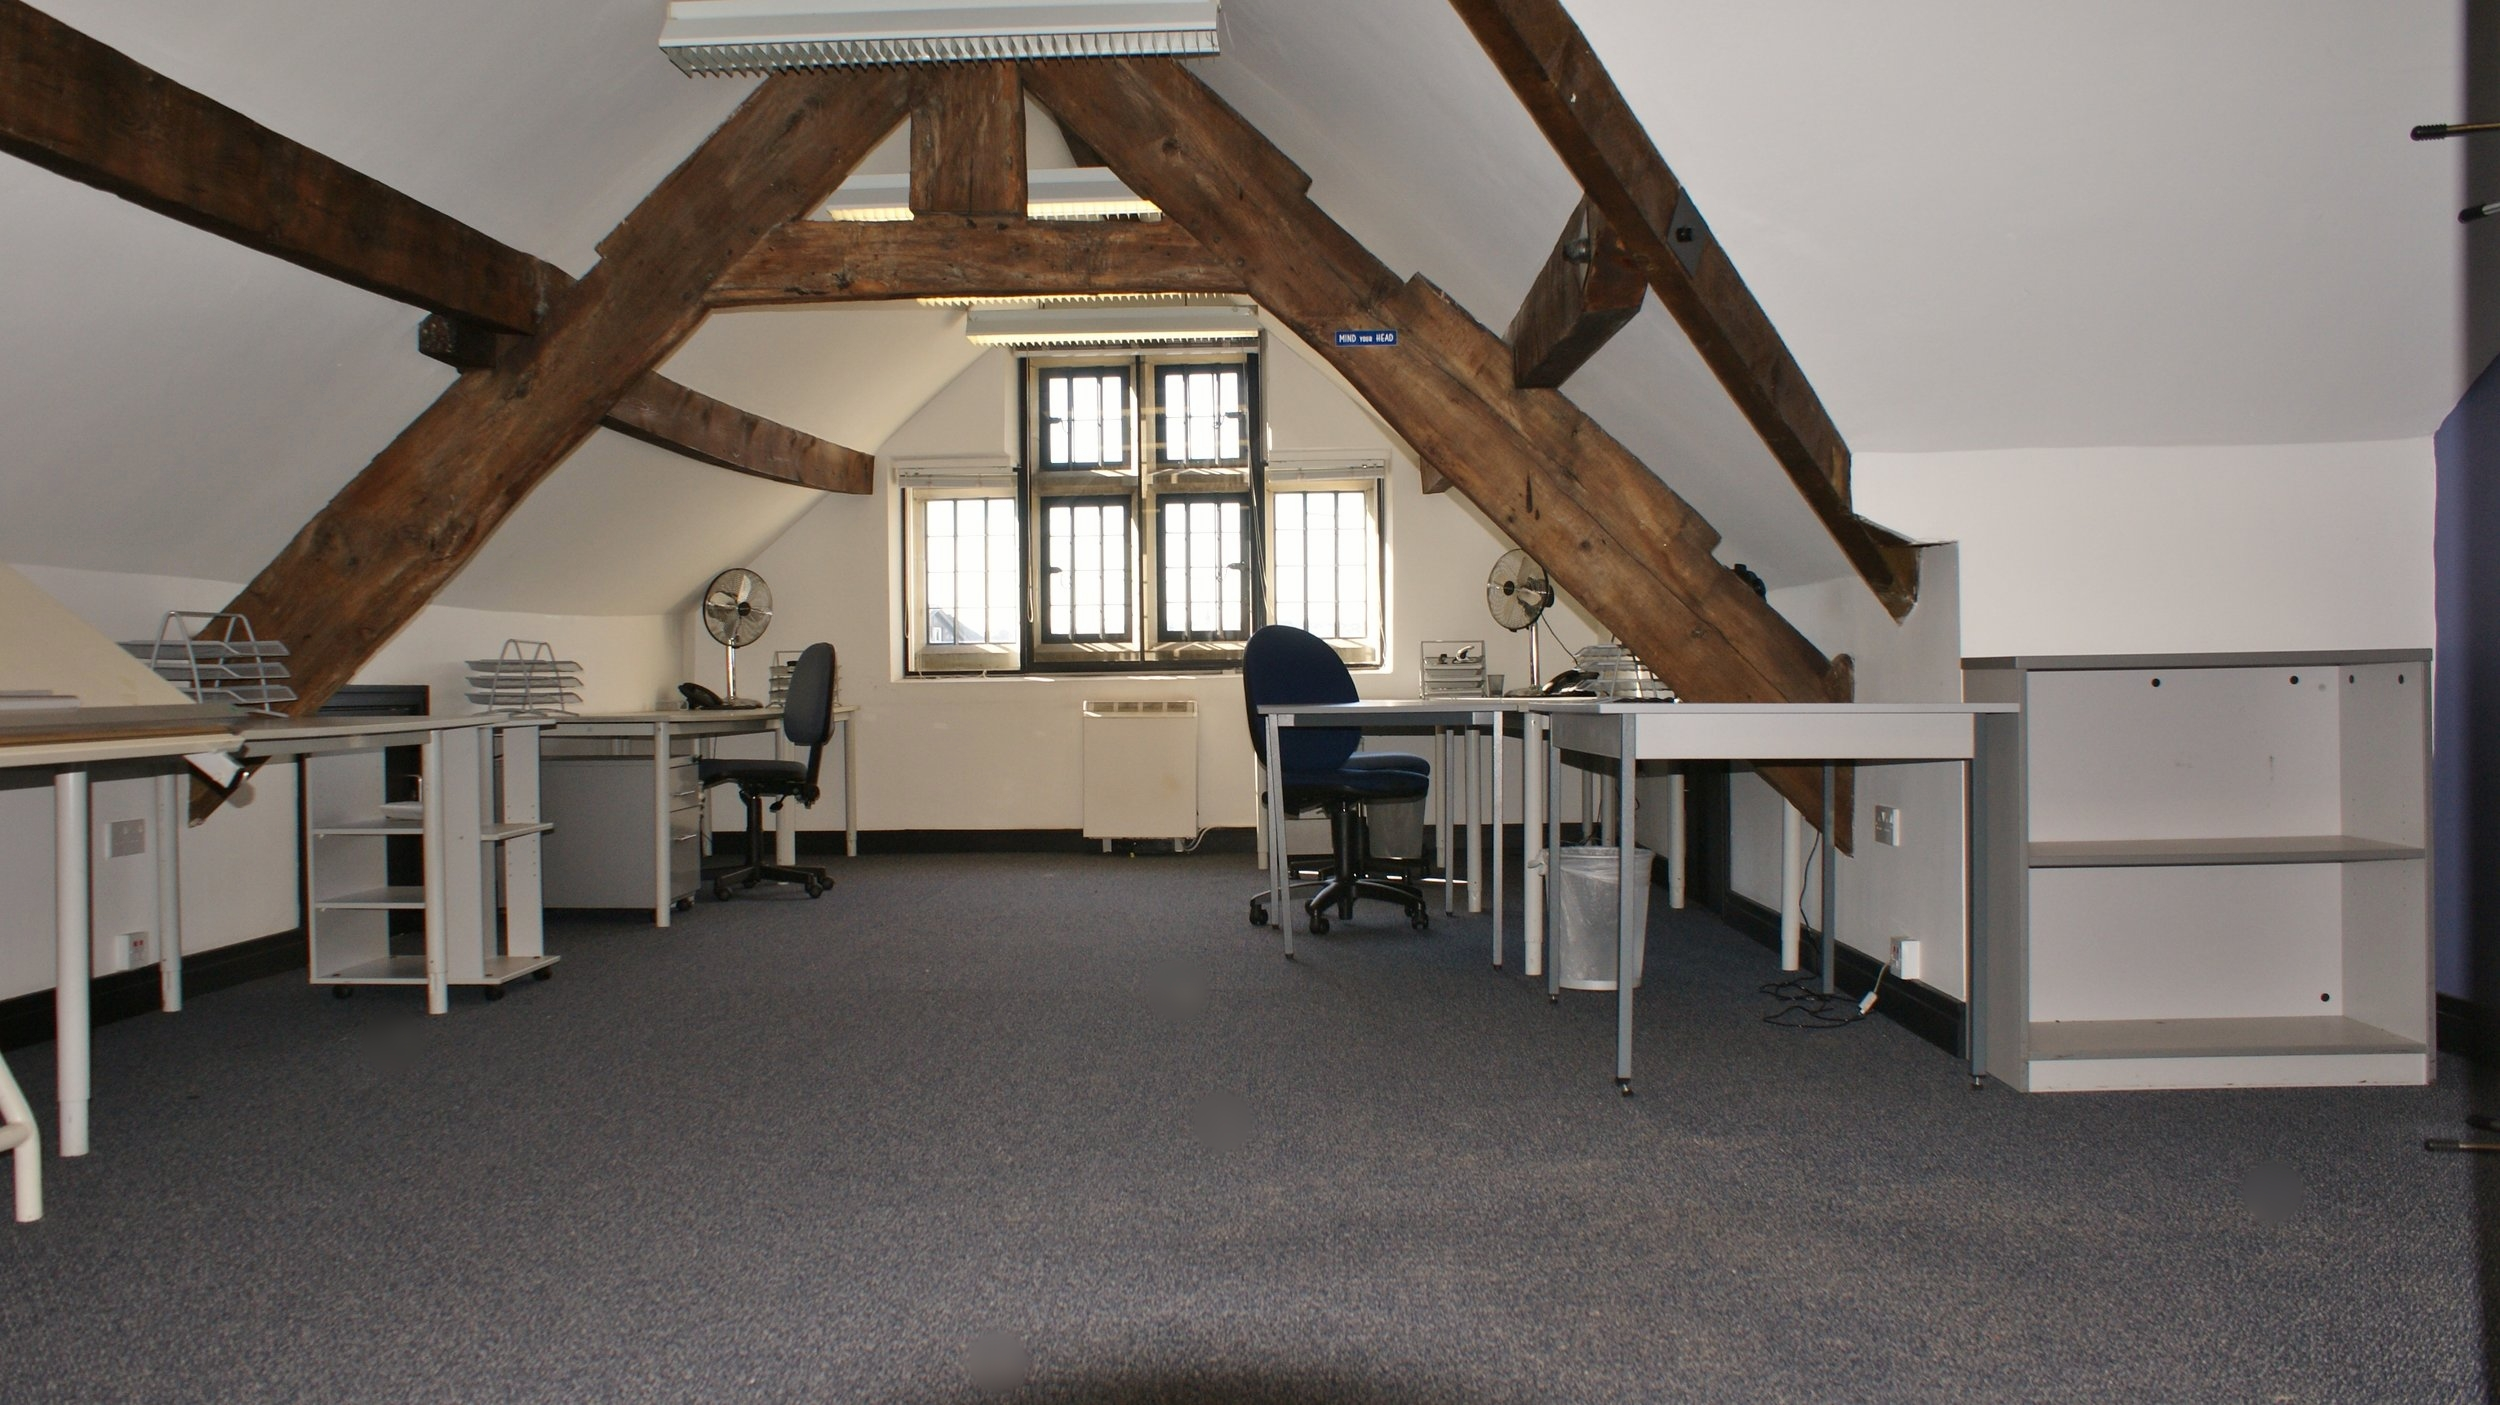 The third floor office was designed to incorporate the reduced ceiling height whilst retaining the buildings rustic features and character.